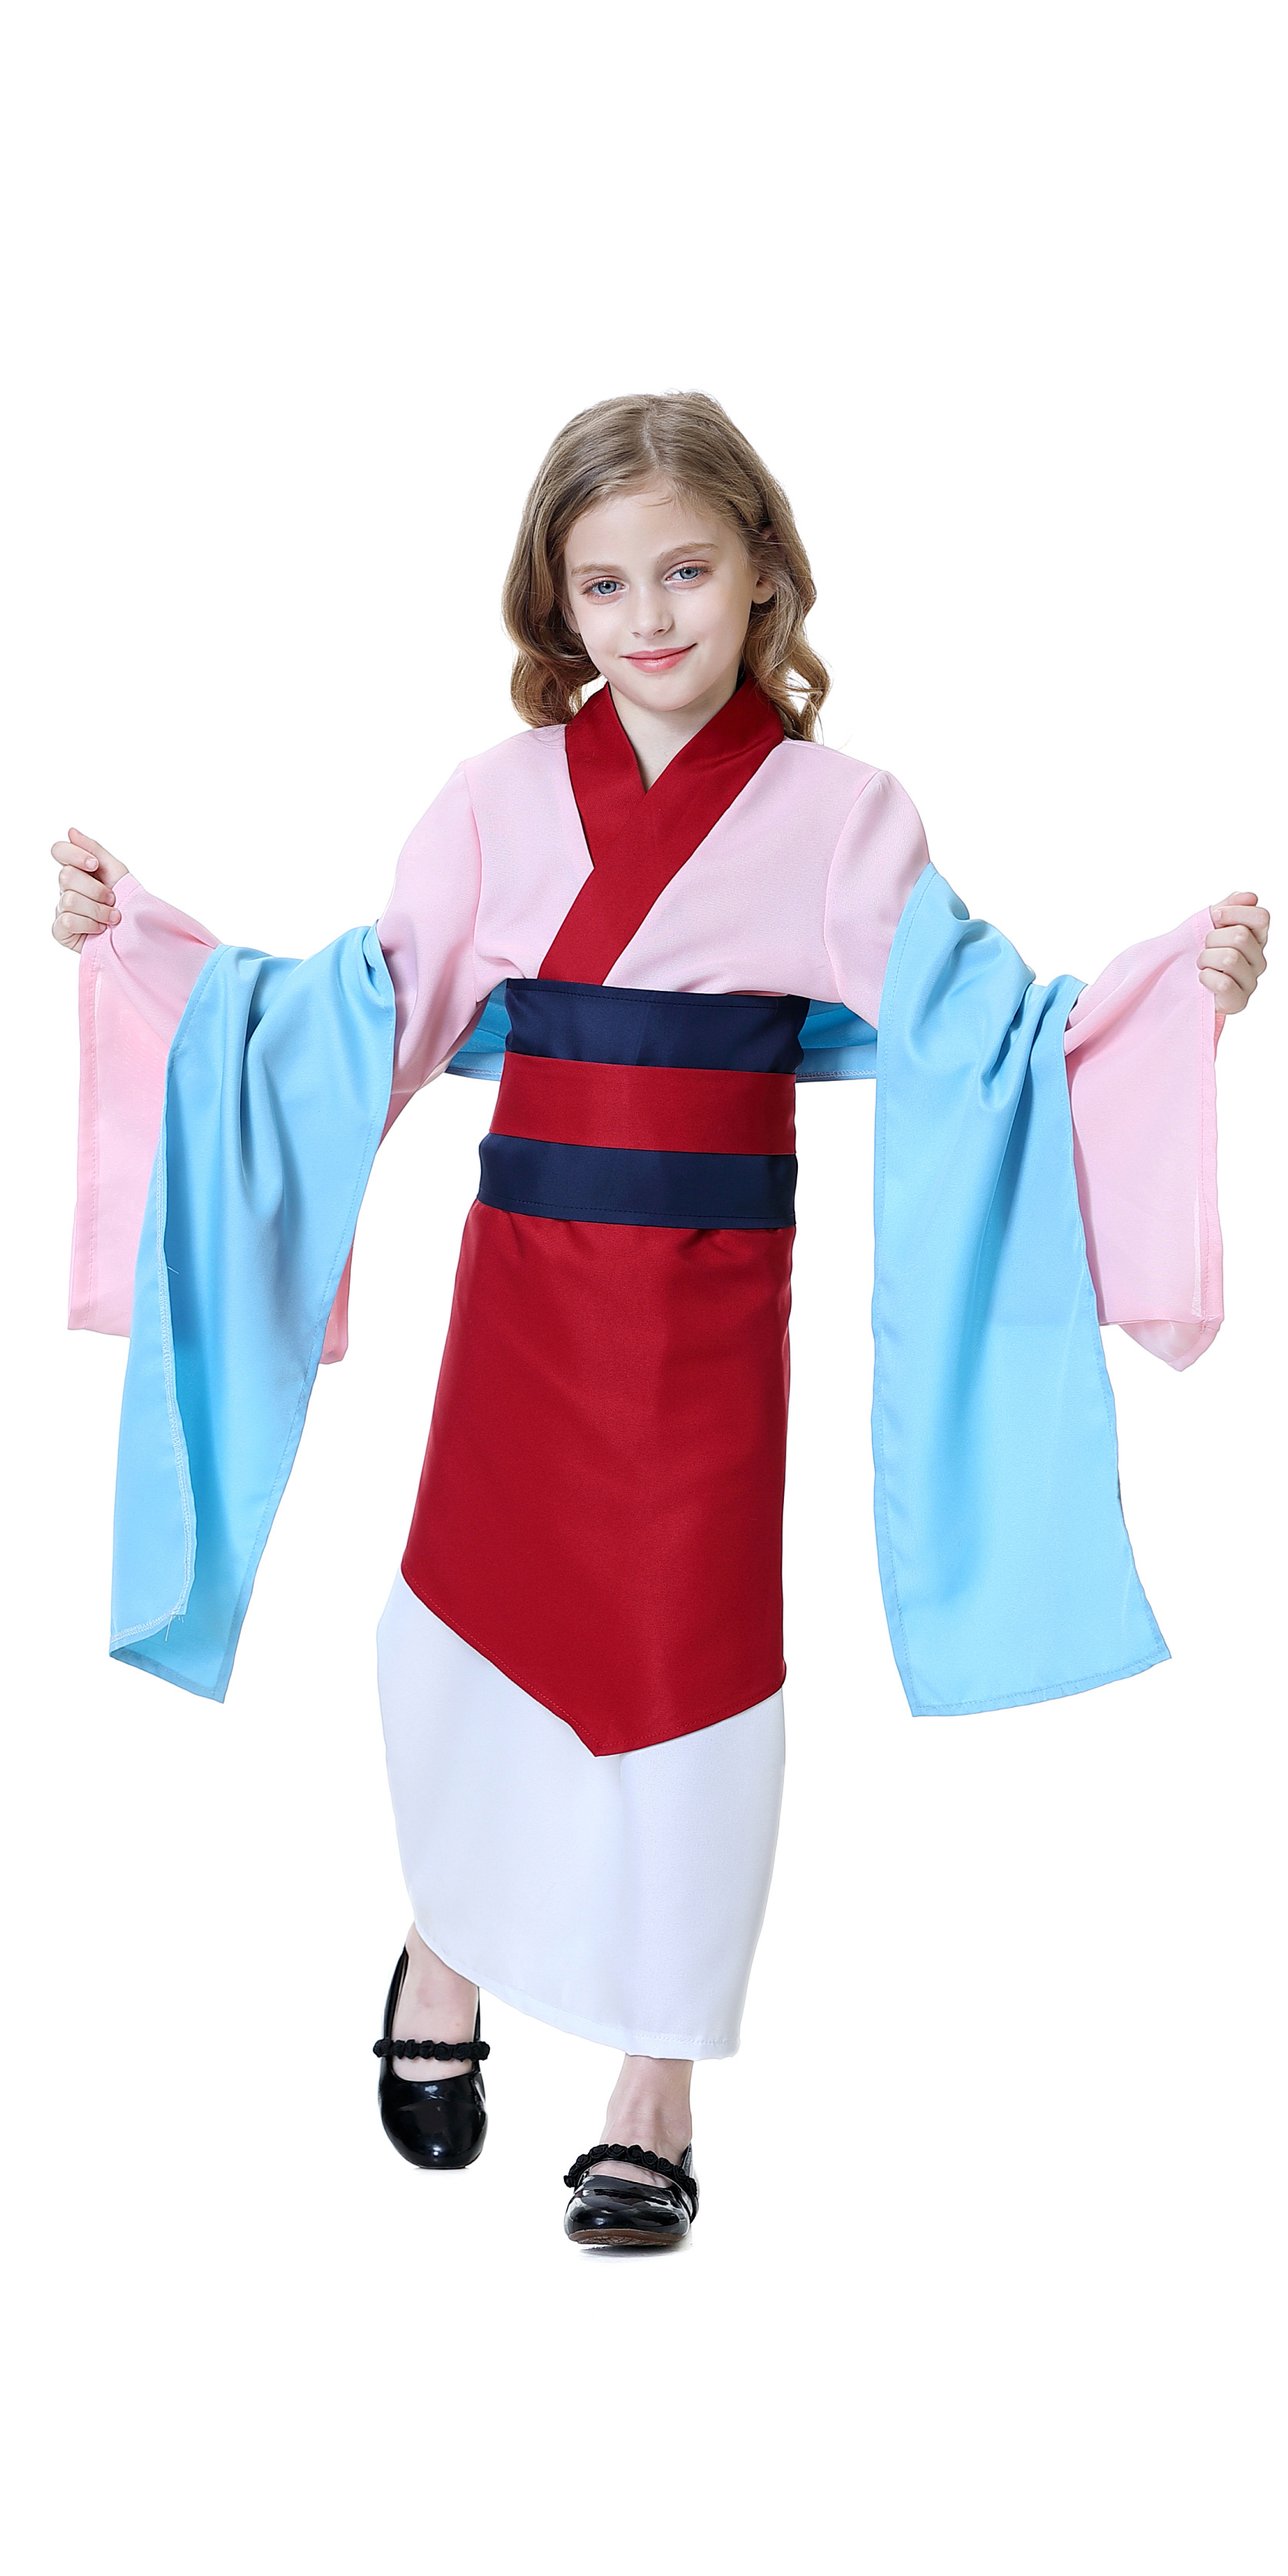 Red Dress Girl Roblox Costume Mulan Costumes Kids Halloween Costumes For Kids Mulan Cosplay Anime Princess Dress Girl Suit Girl Carnival Clothes Movie Girls Costumes Aliexpress